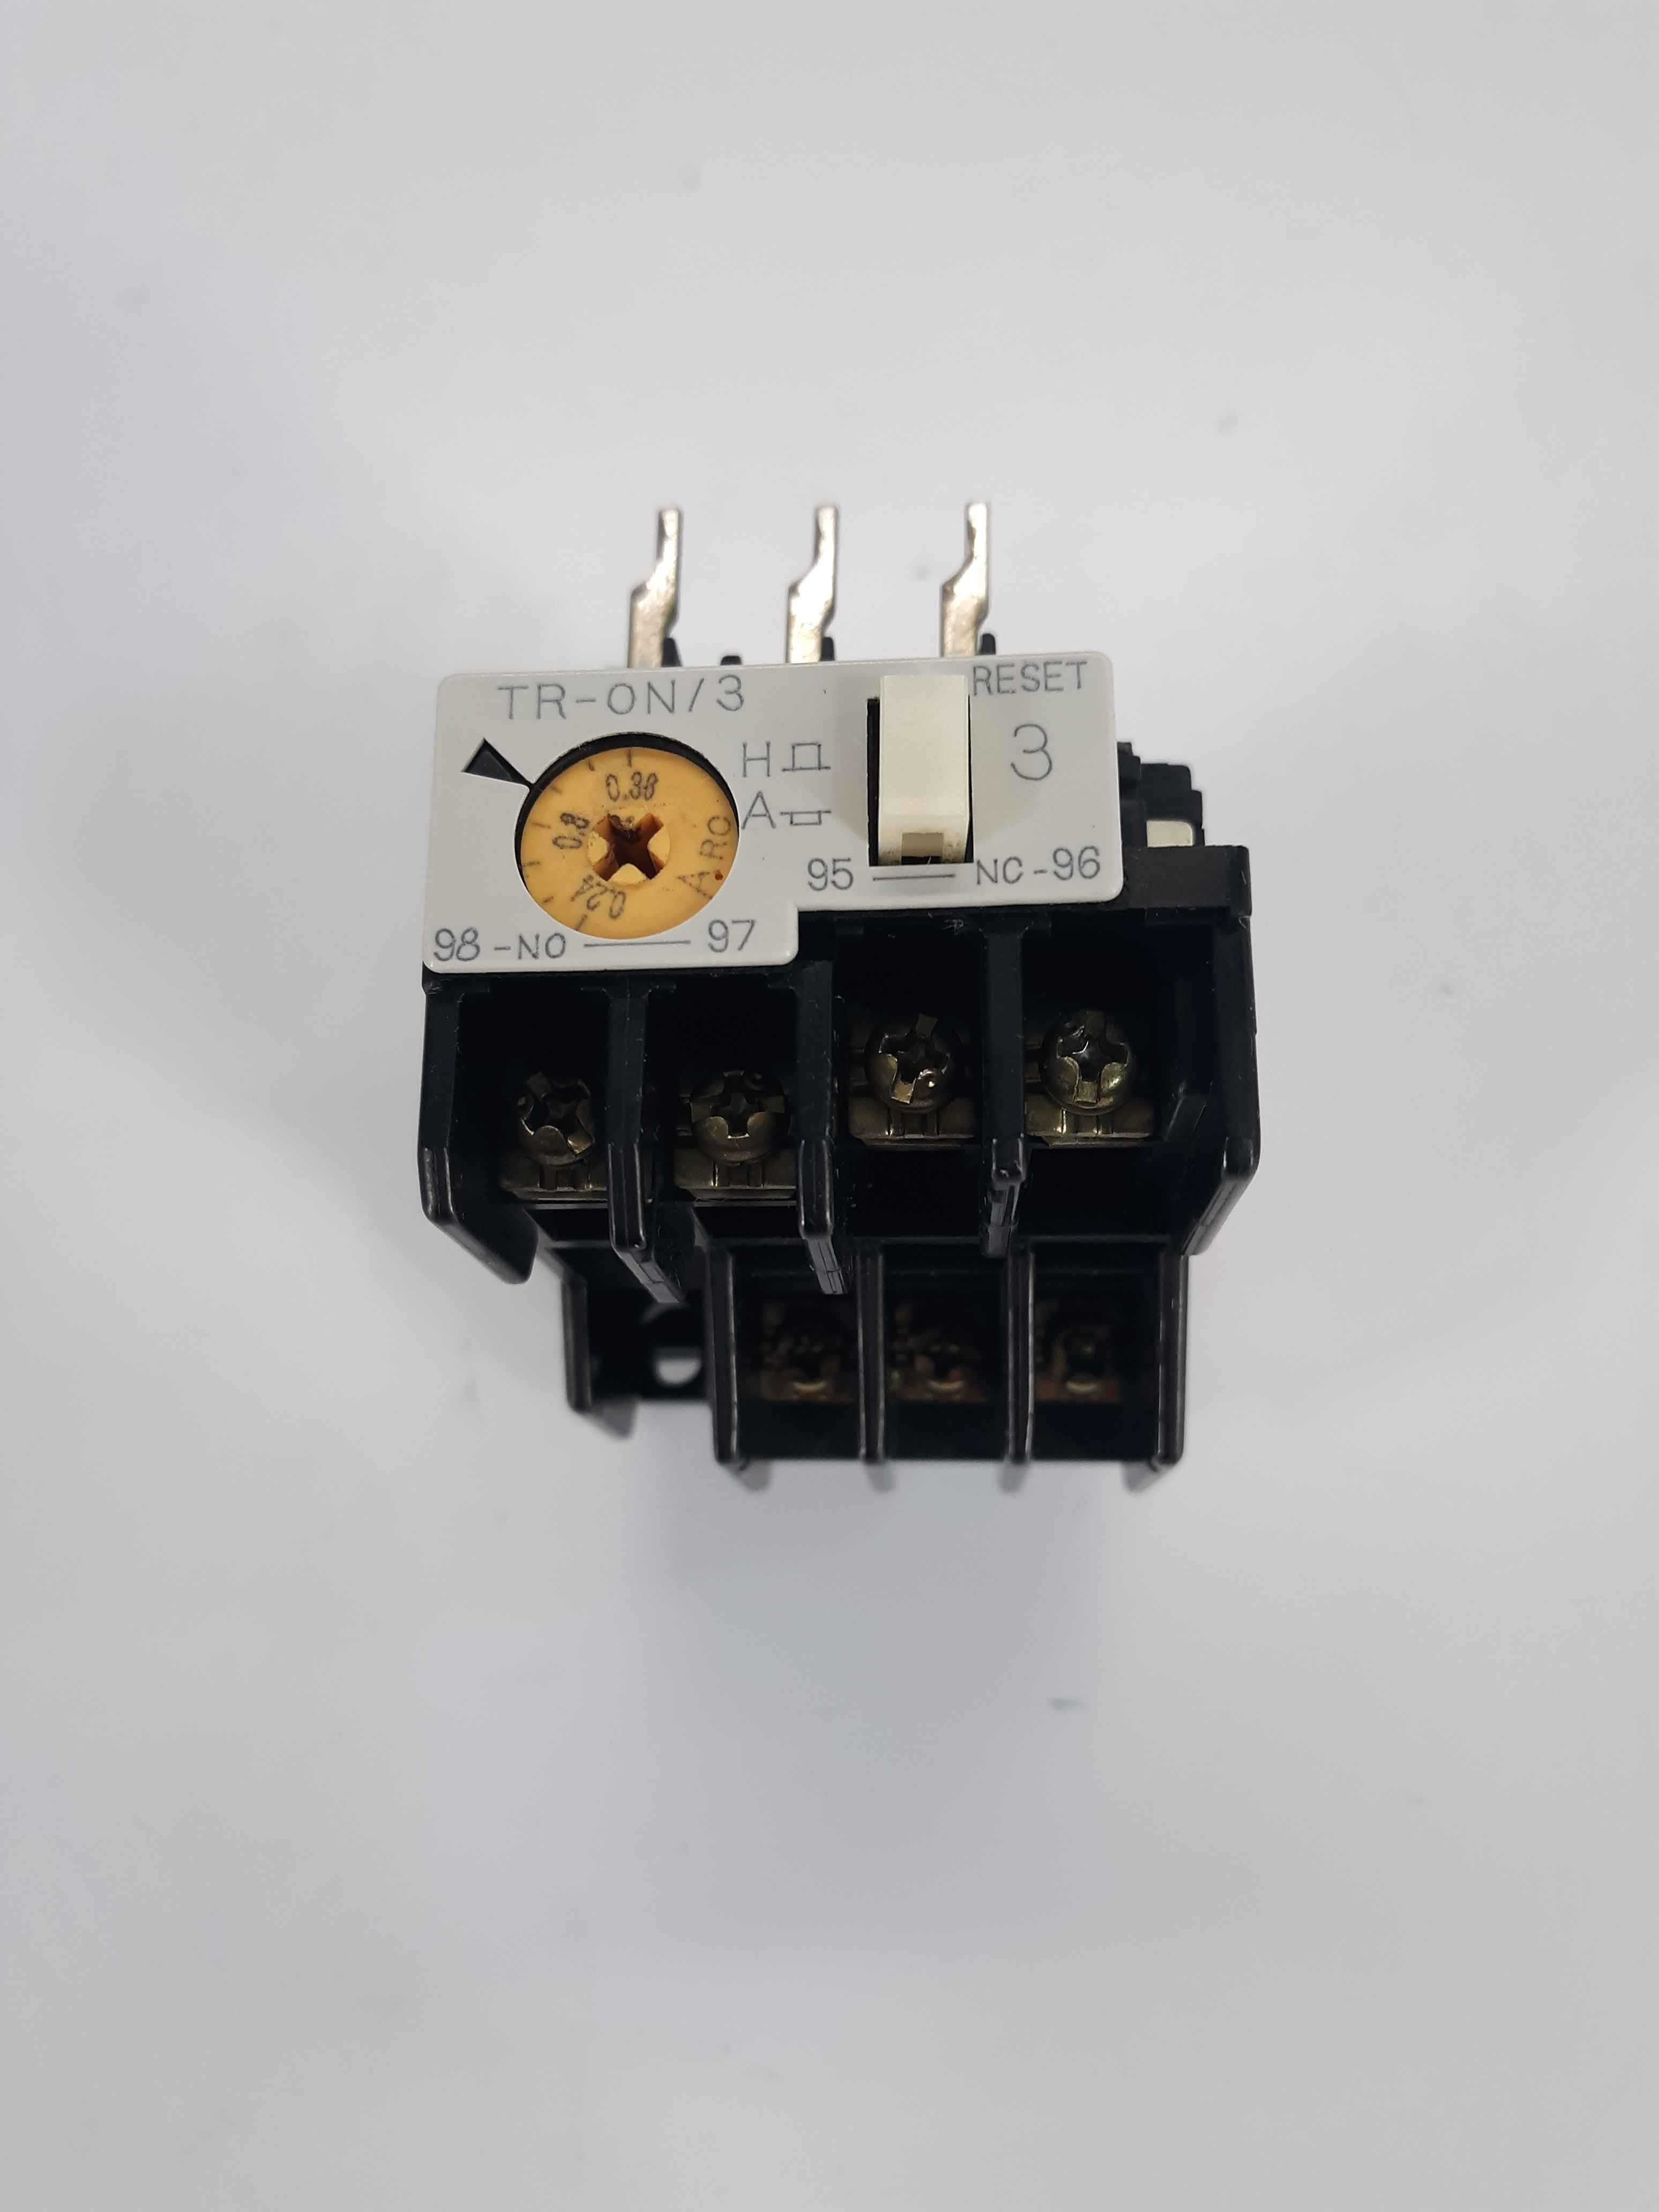 Fuji TR-ON/3 4NR0AC overload relay 0.24-0.36A